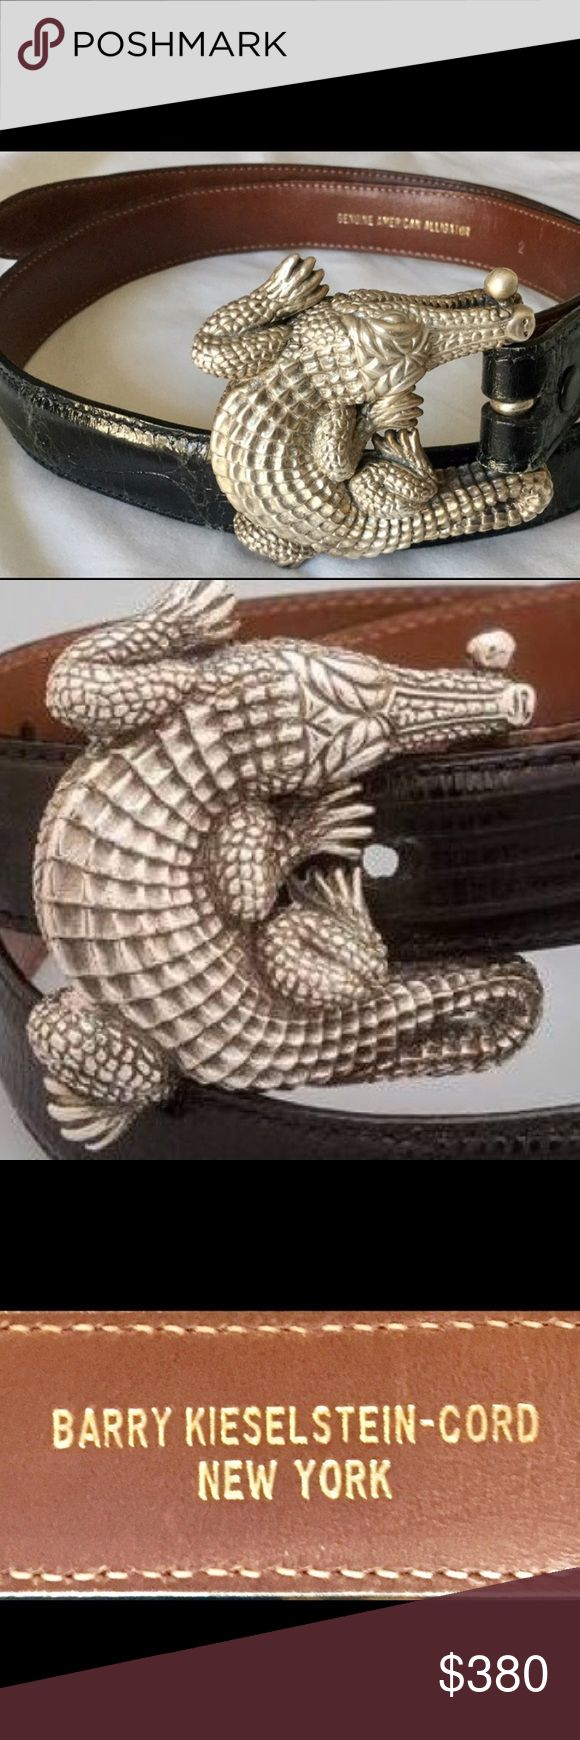 BARRY KIESELSTEIN-CORD Sterling Buckle /Three Belt Impressive AUTHENTIC BARRY KIESELSTEIN CORD STERLING SILVER ALLIGATOR BELT BUCKLE. Serial number 769. This Brilliant Kieselstein comes with THREE BELTS Made For The Buckle. Excellent Condition. WEARABLE ART AND VINTAGE. You will Not see a better price. Barry Kieselstein Cord Accessories Belts